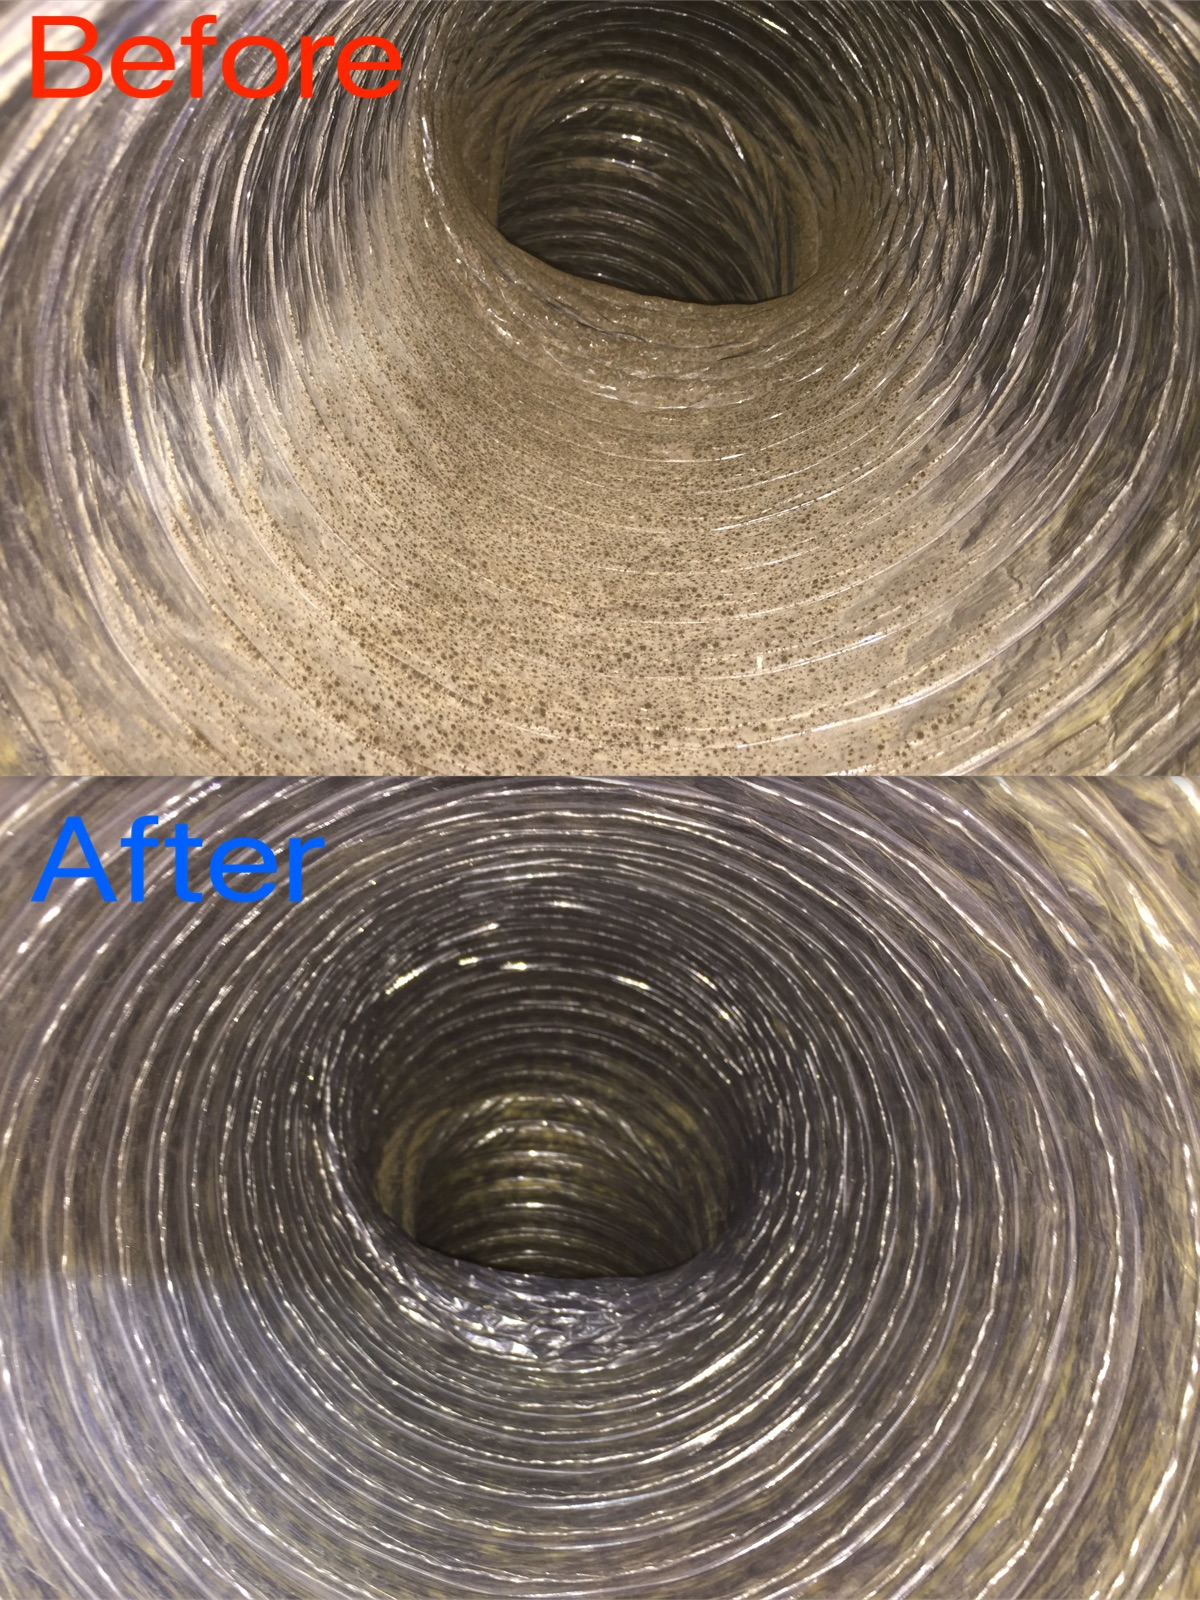 Flex Duct Before & After